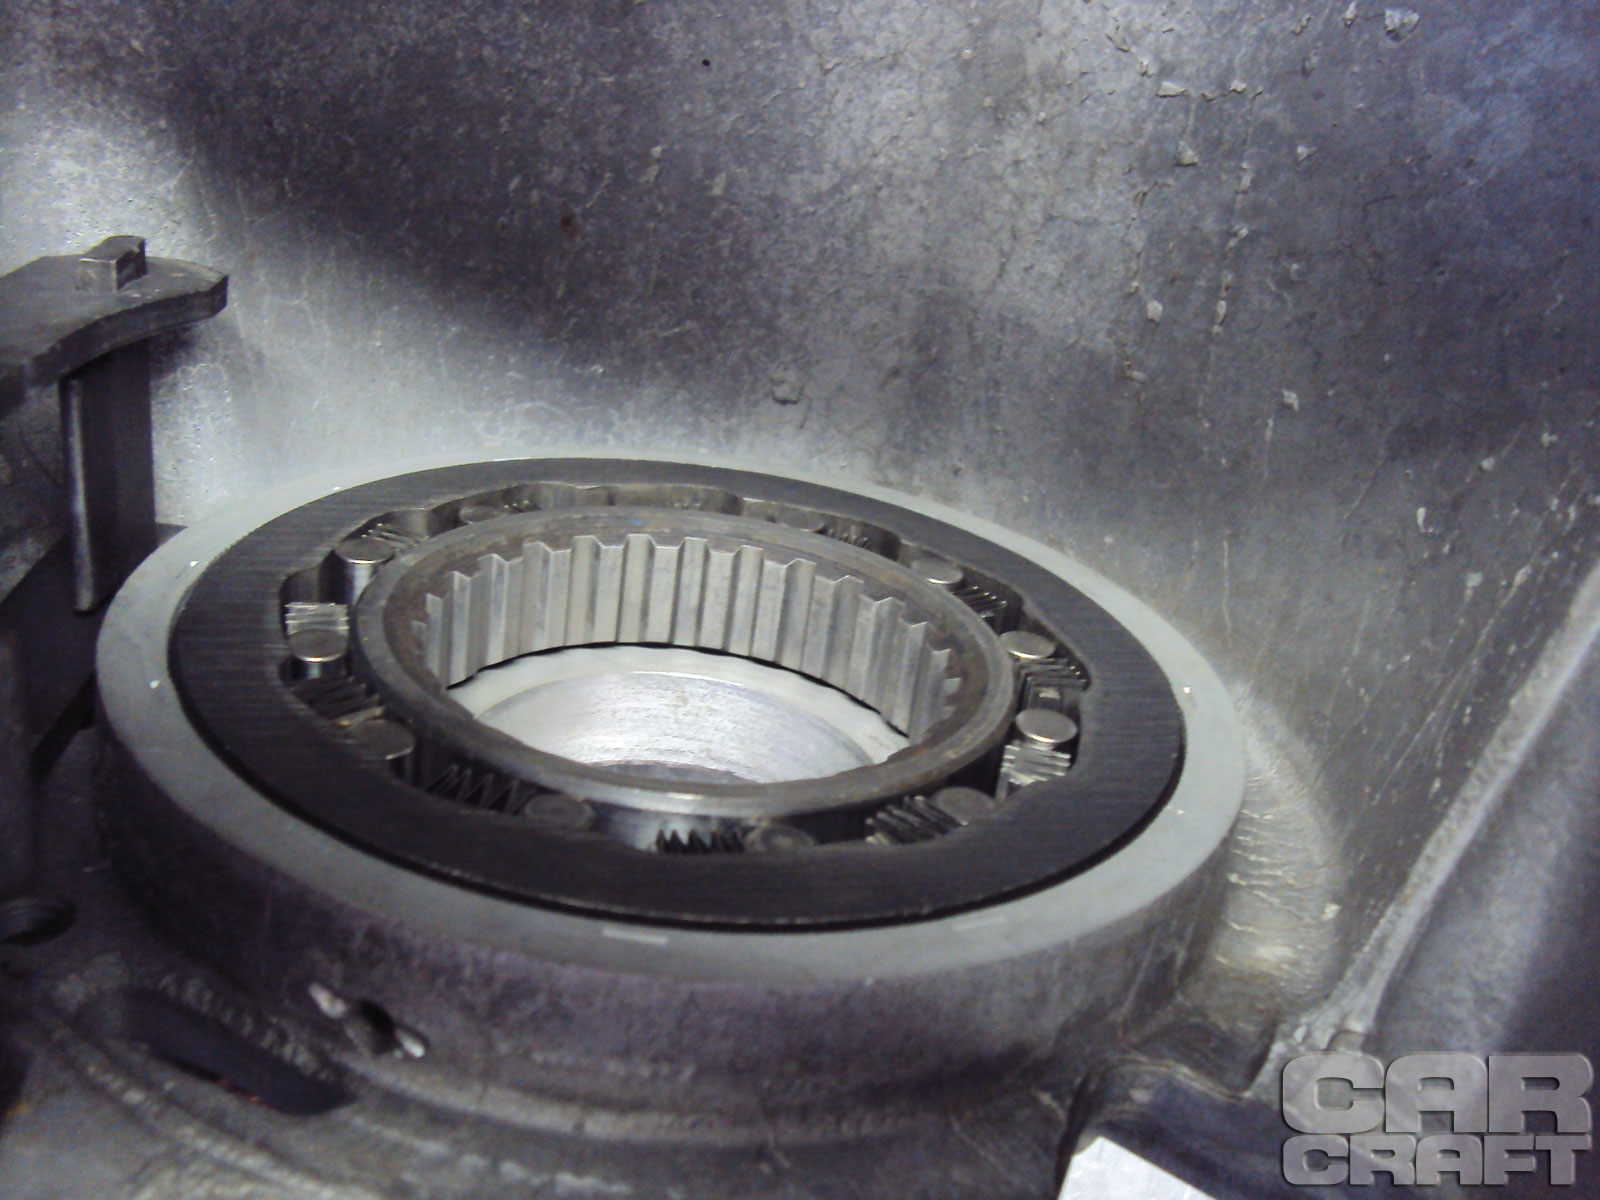 The overrunning clutch (aka sprag) is normally splined and pressed into the case. Performance Automatic replaces it with a bolt-in version if needed. If the spring and roller go bad, they can also be replaced.